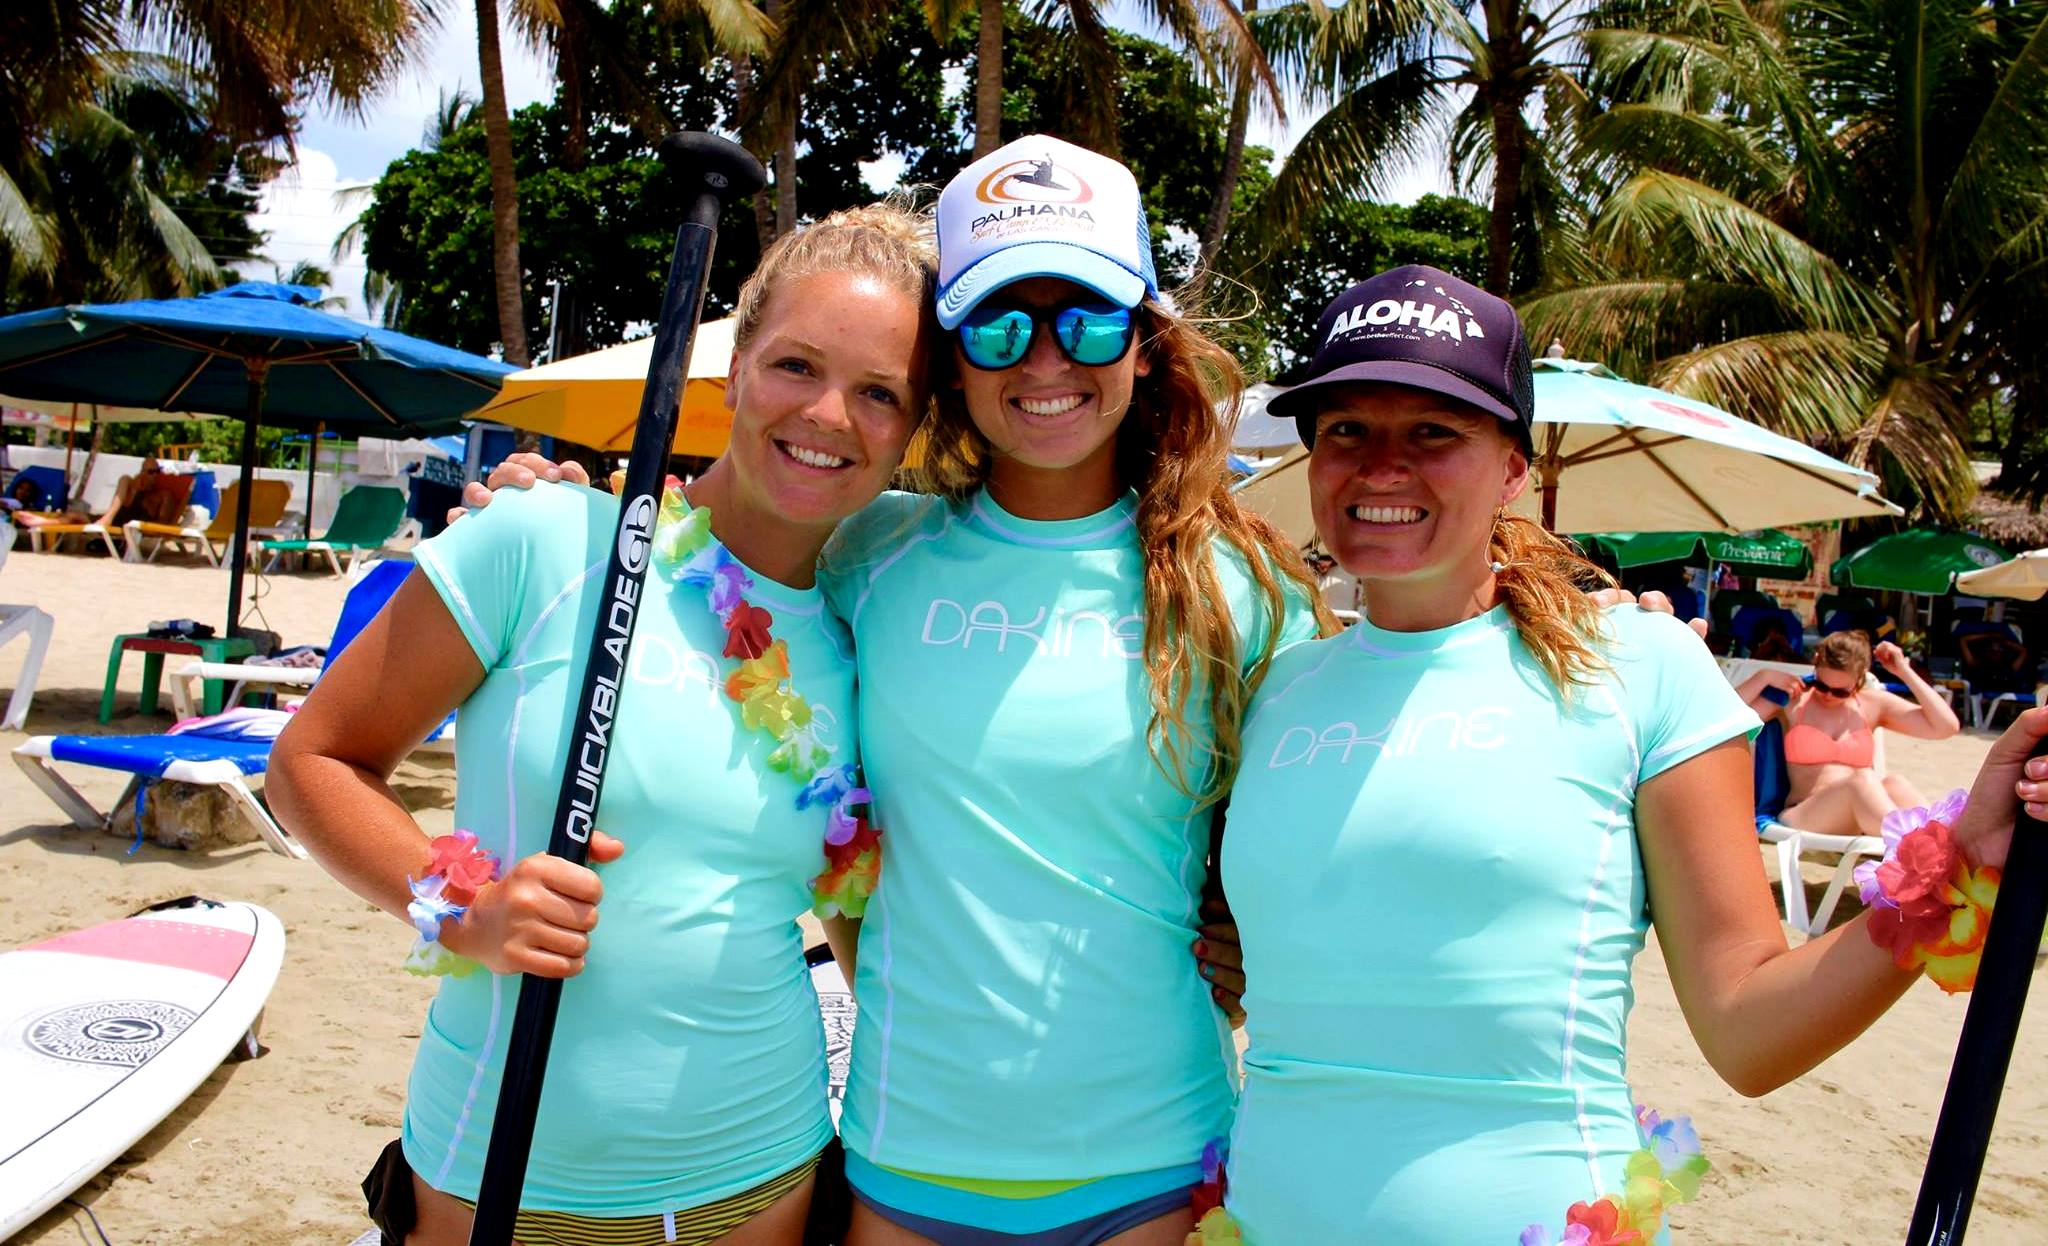 the butterfly effect 7th edition surf sup cabarete amparo maluendez deportes extremos extremard